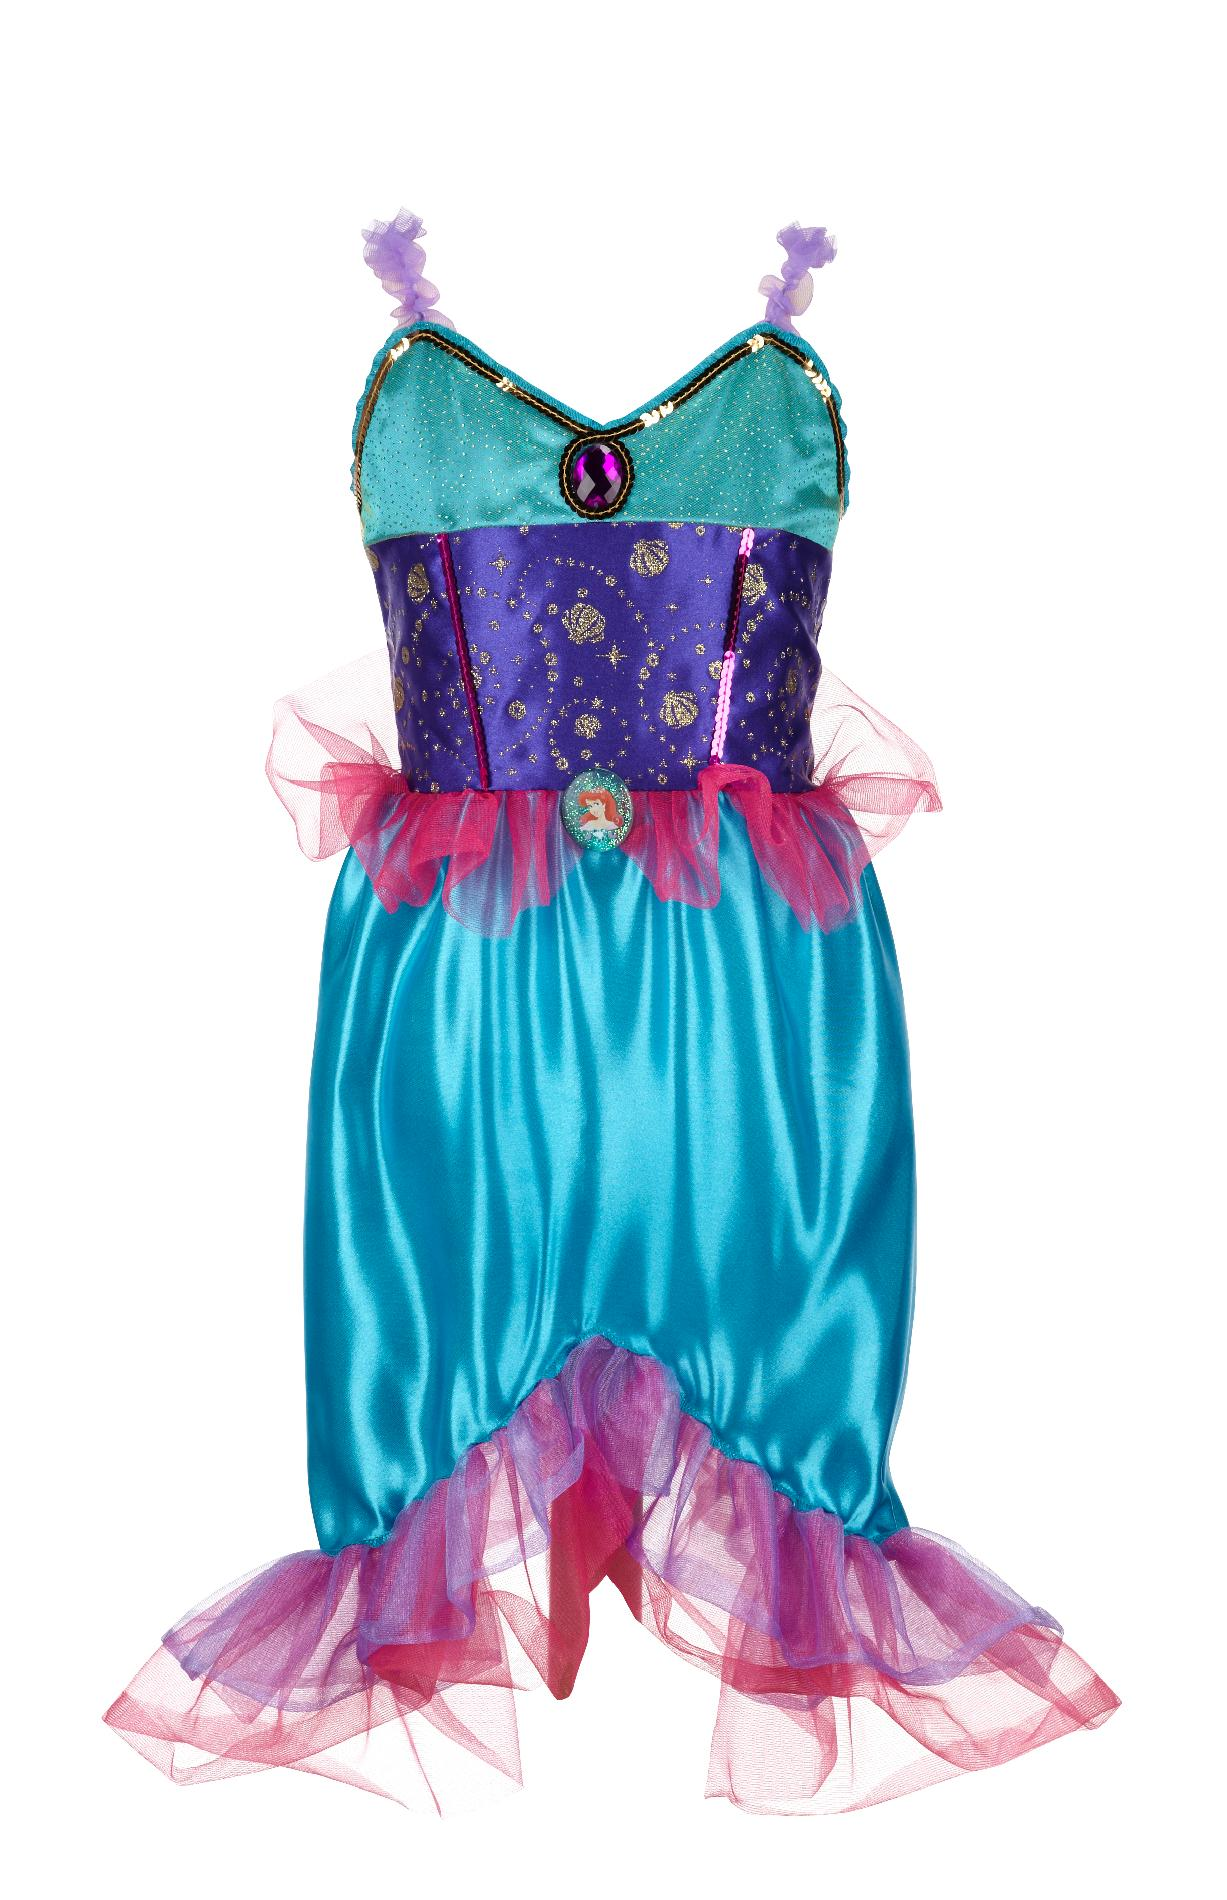 Pretend Play & Dress Up at mygofer.com